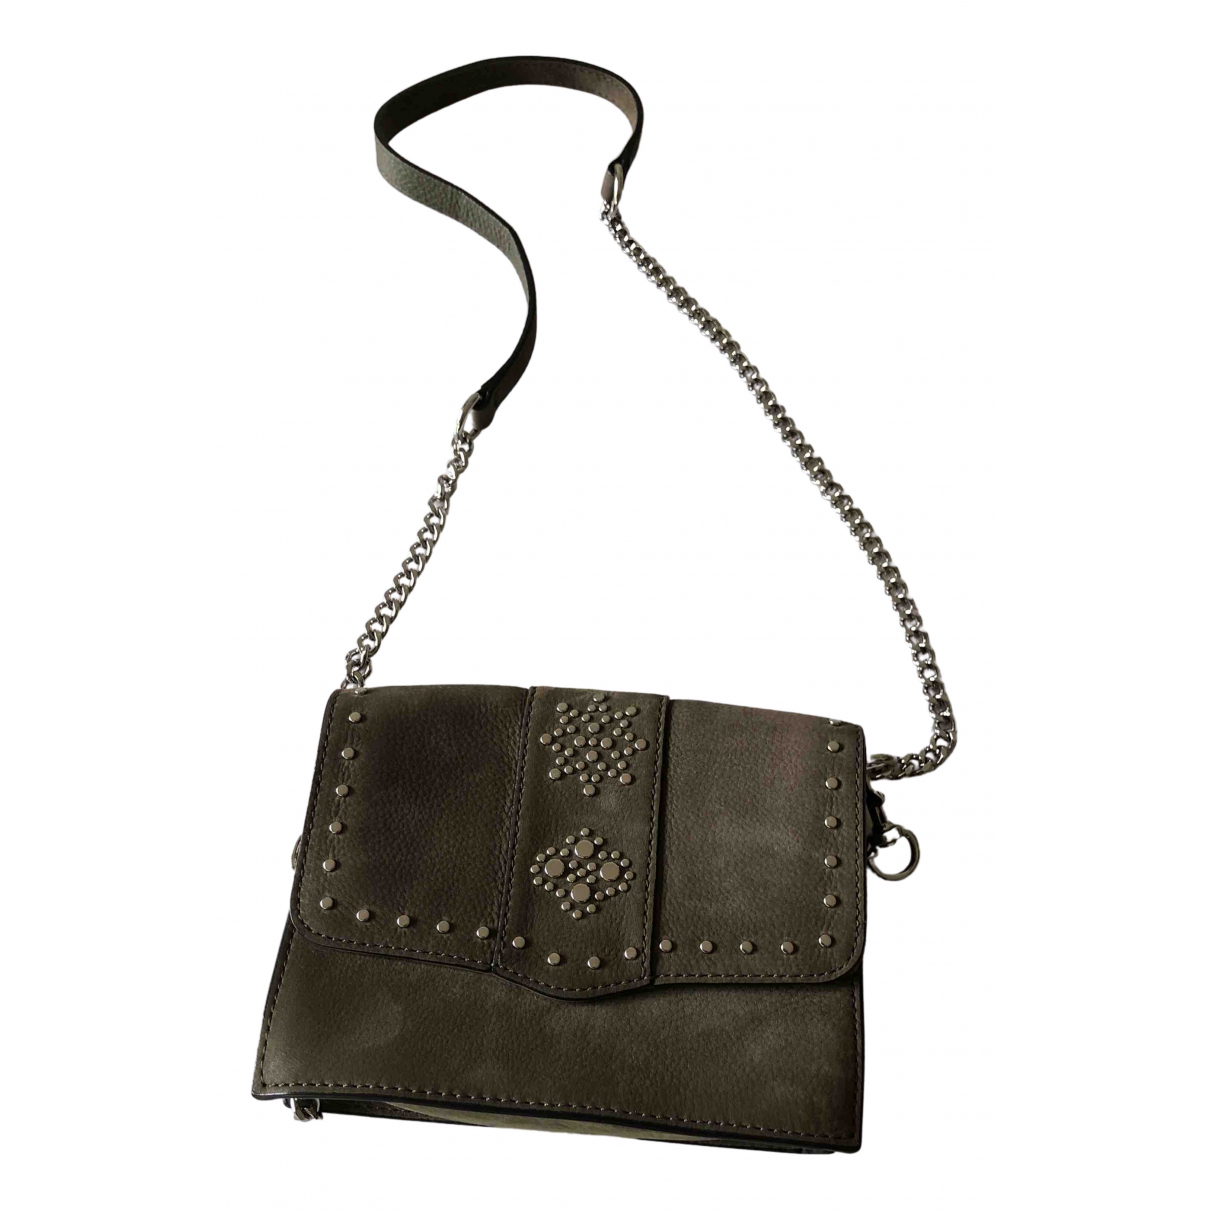 Rebecca Minkoff \N Clutch in  Gruen Veloursleder